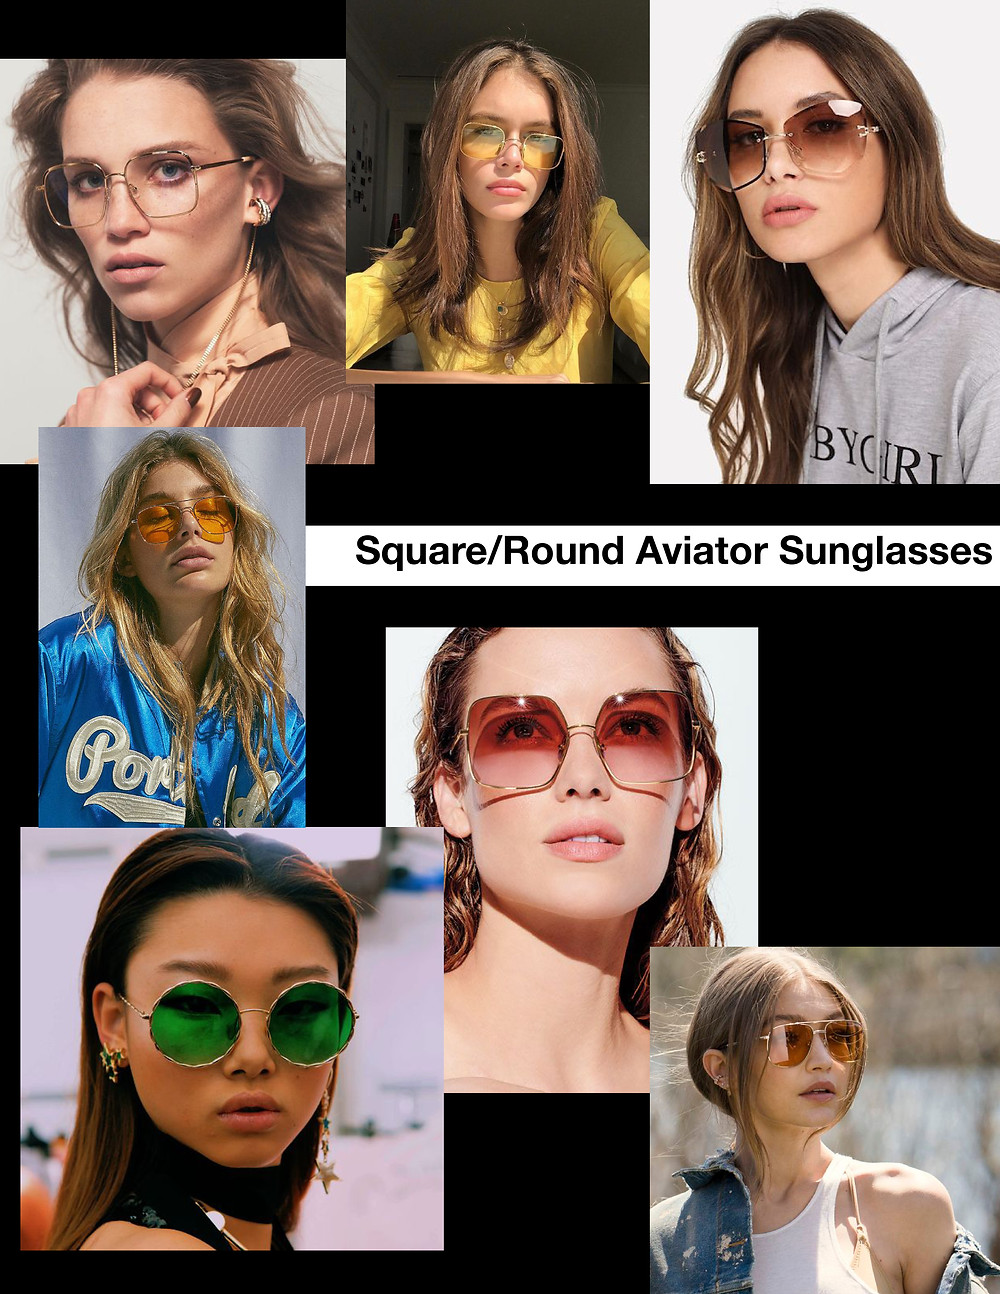 Square Aviators, Round Aviator sunglasses shades, stylist selection, shopping guide, fashion trends, summer 2021